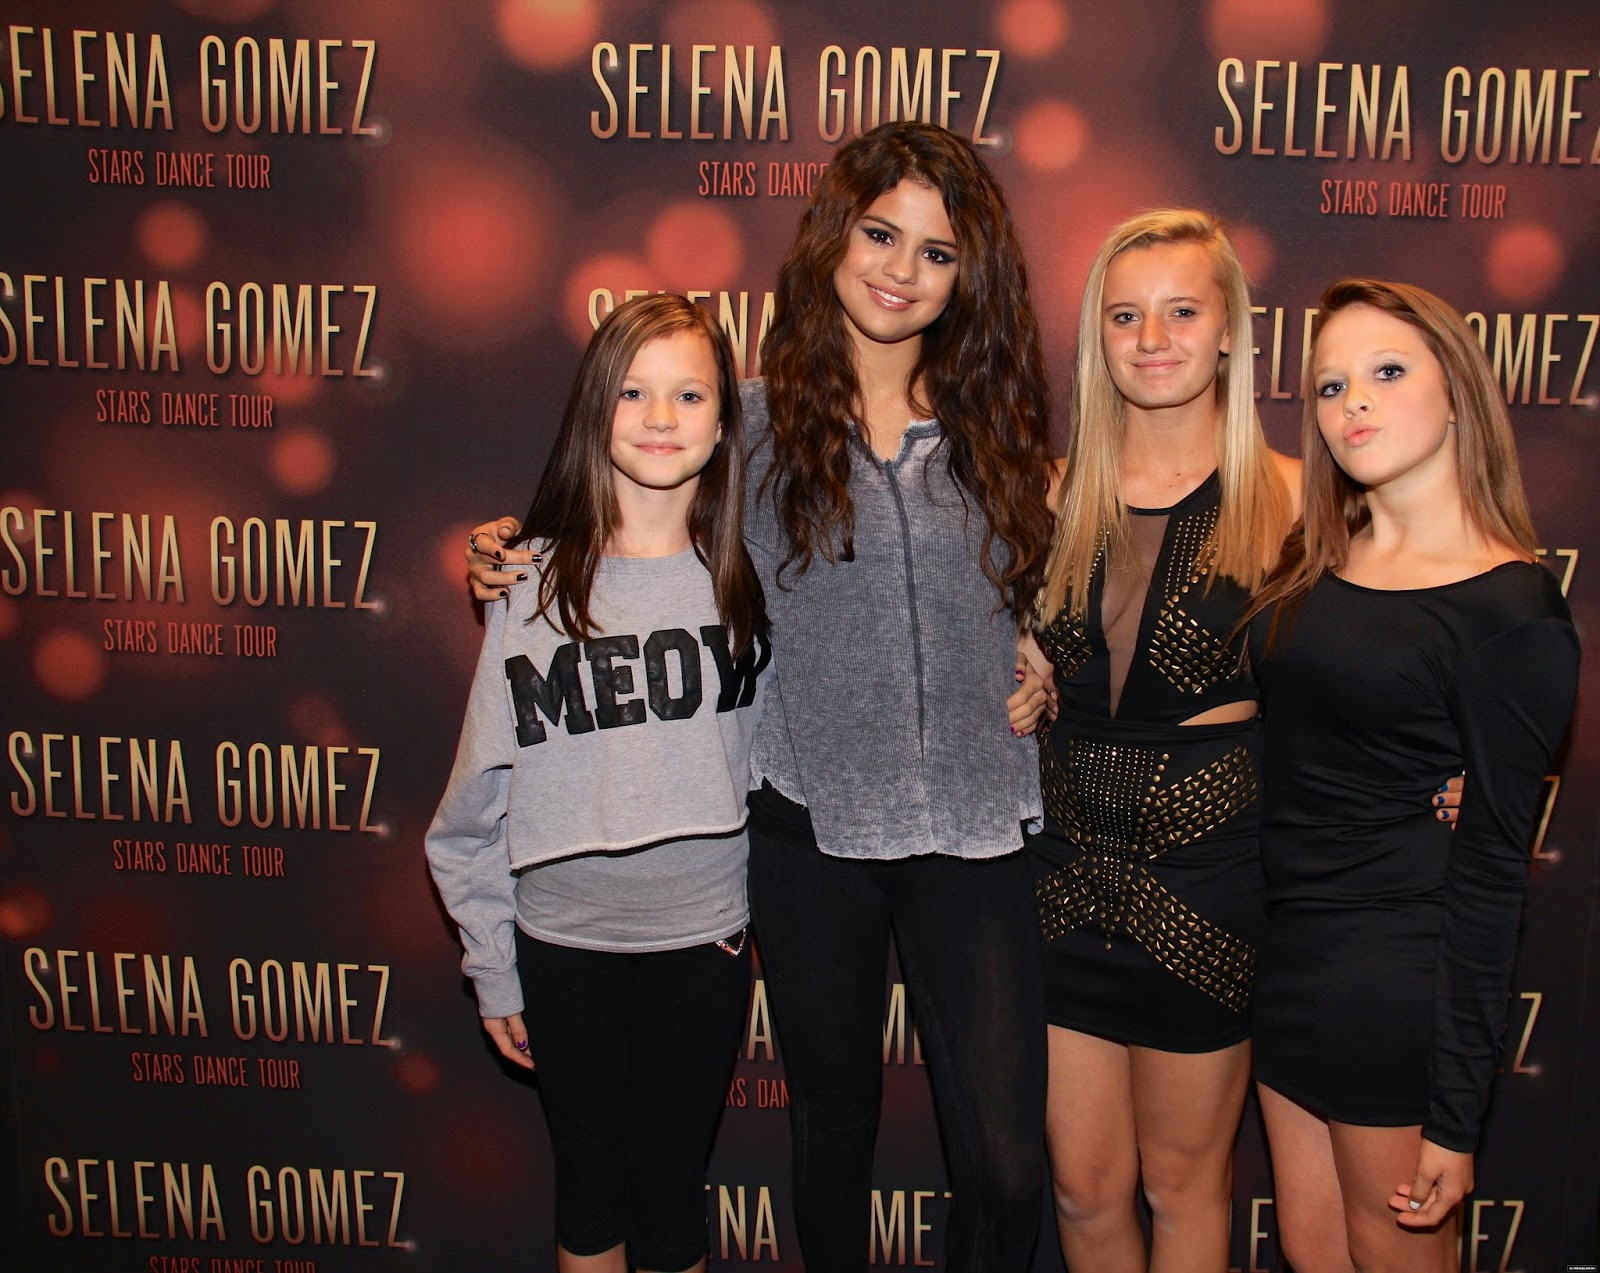 meet and greets in chicago 2013